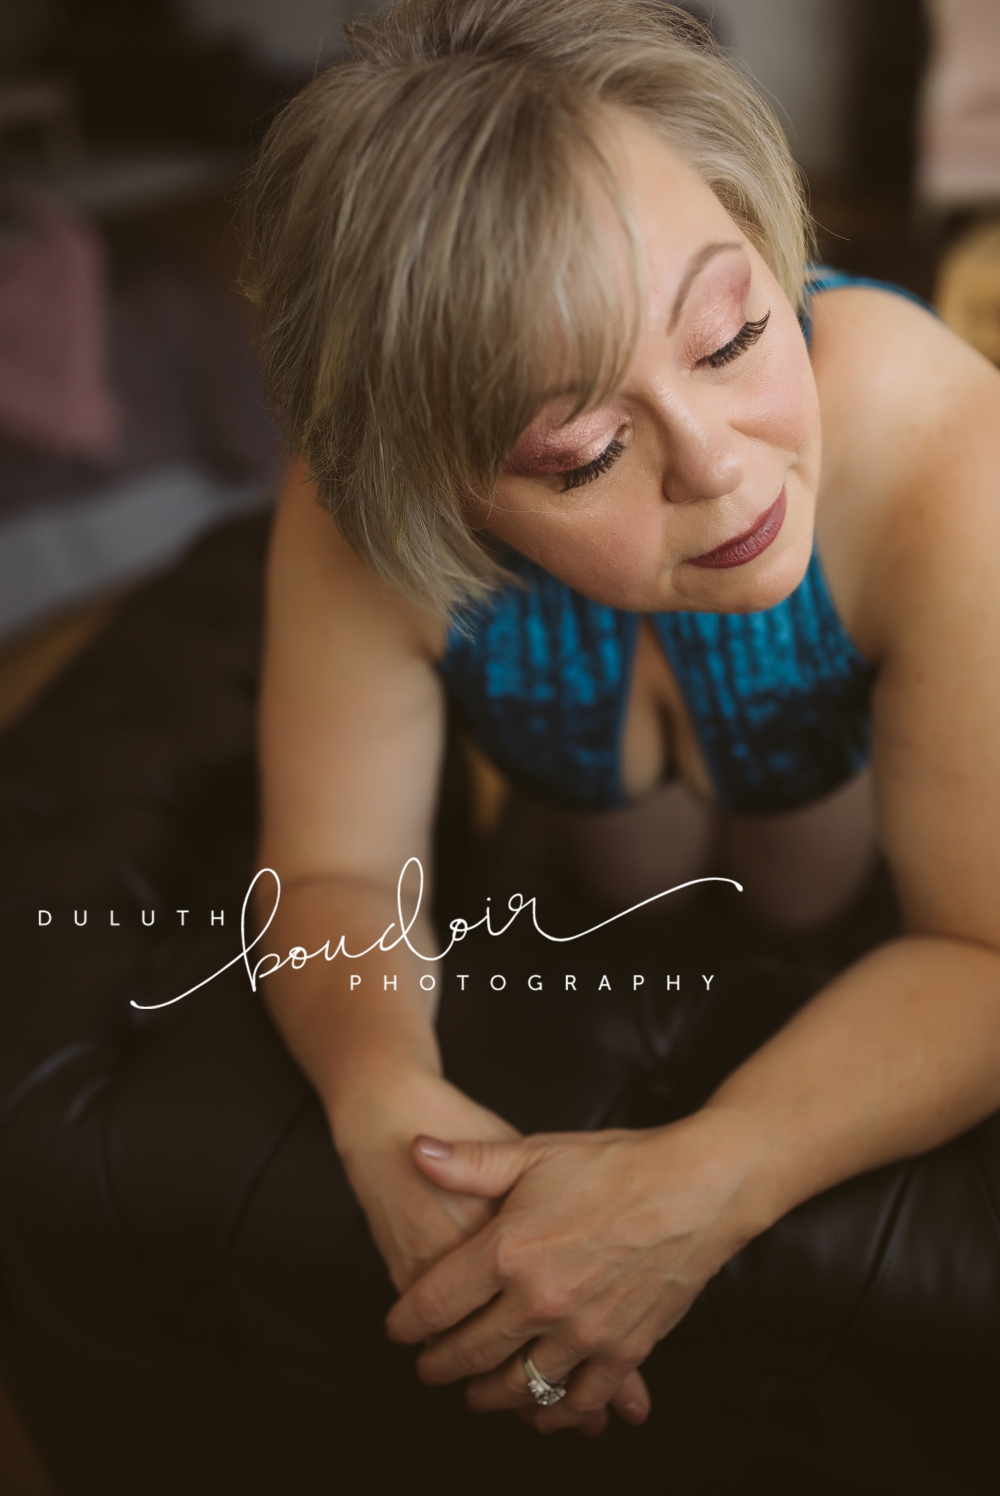 duluth_boudoir_photography_julie_11